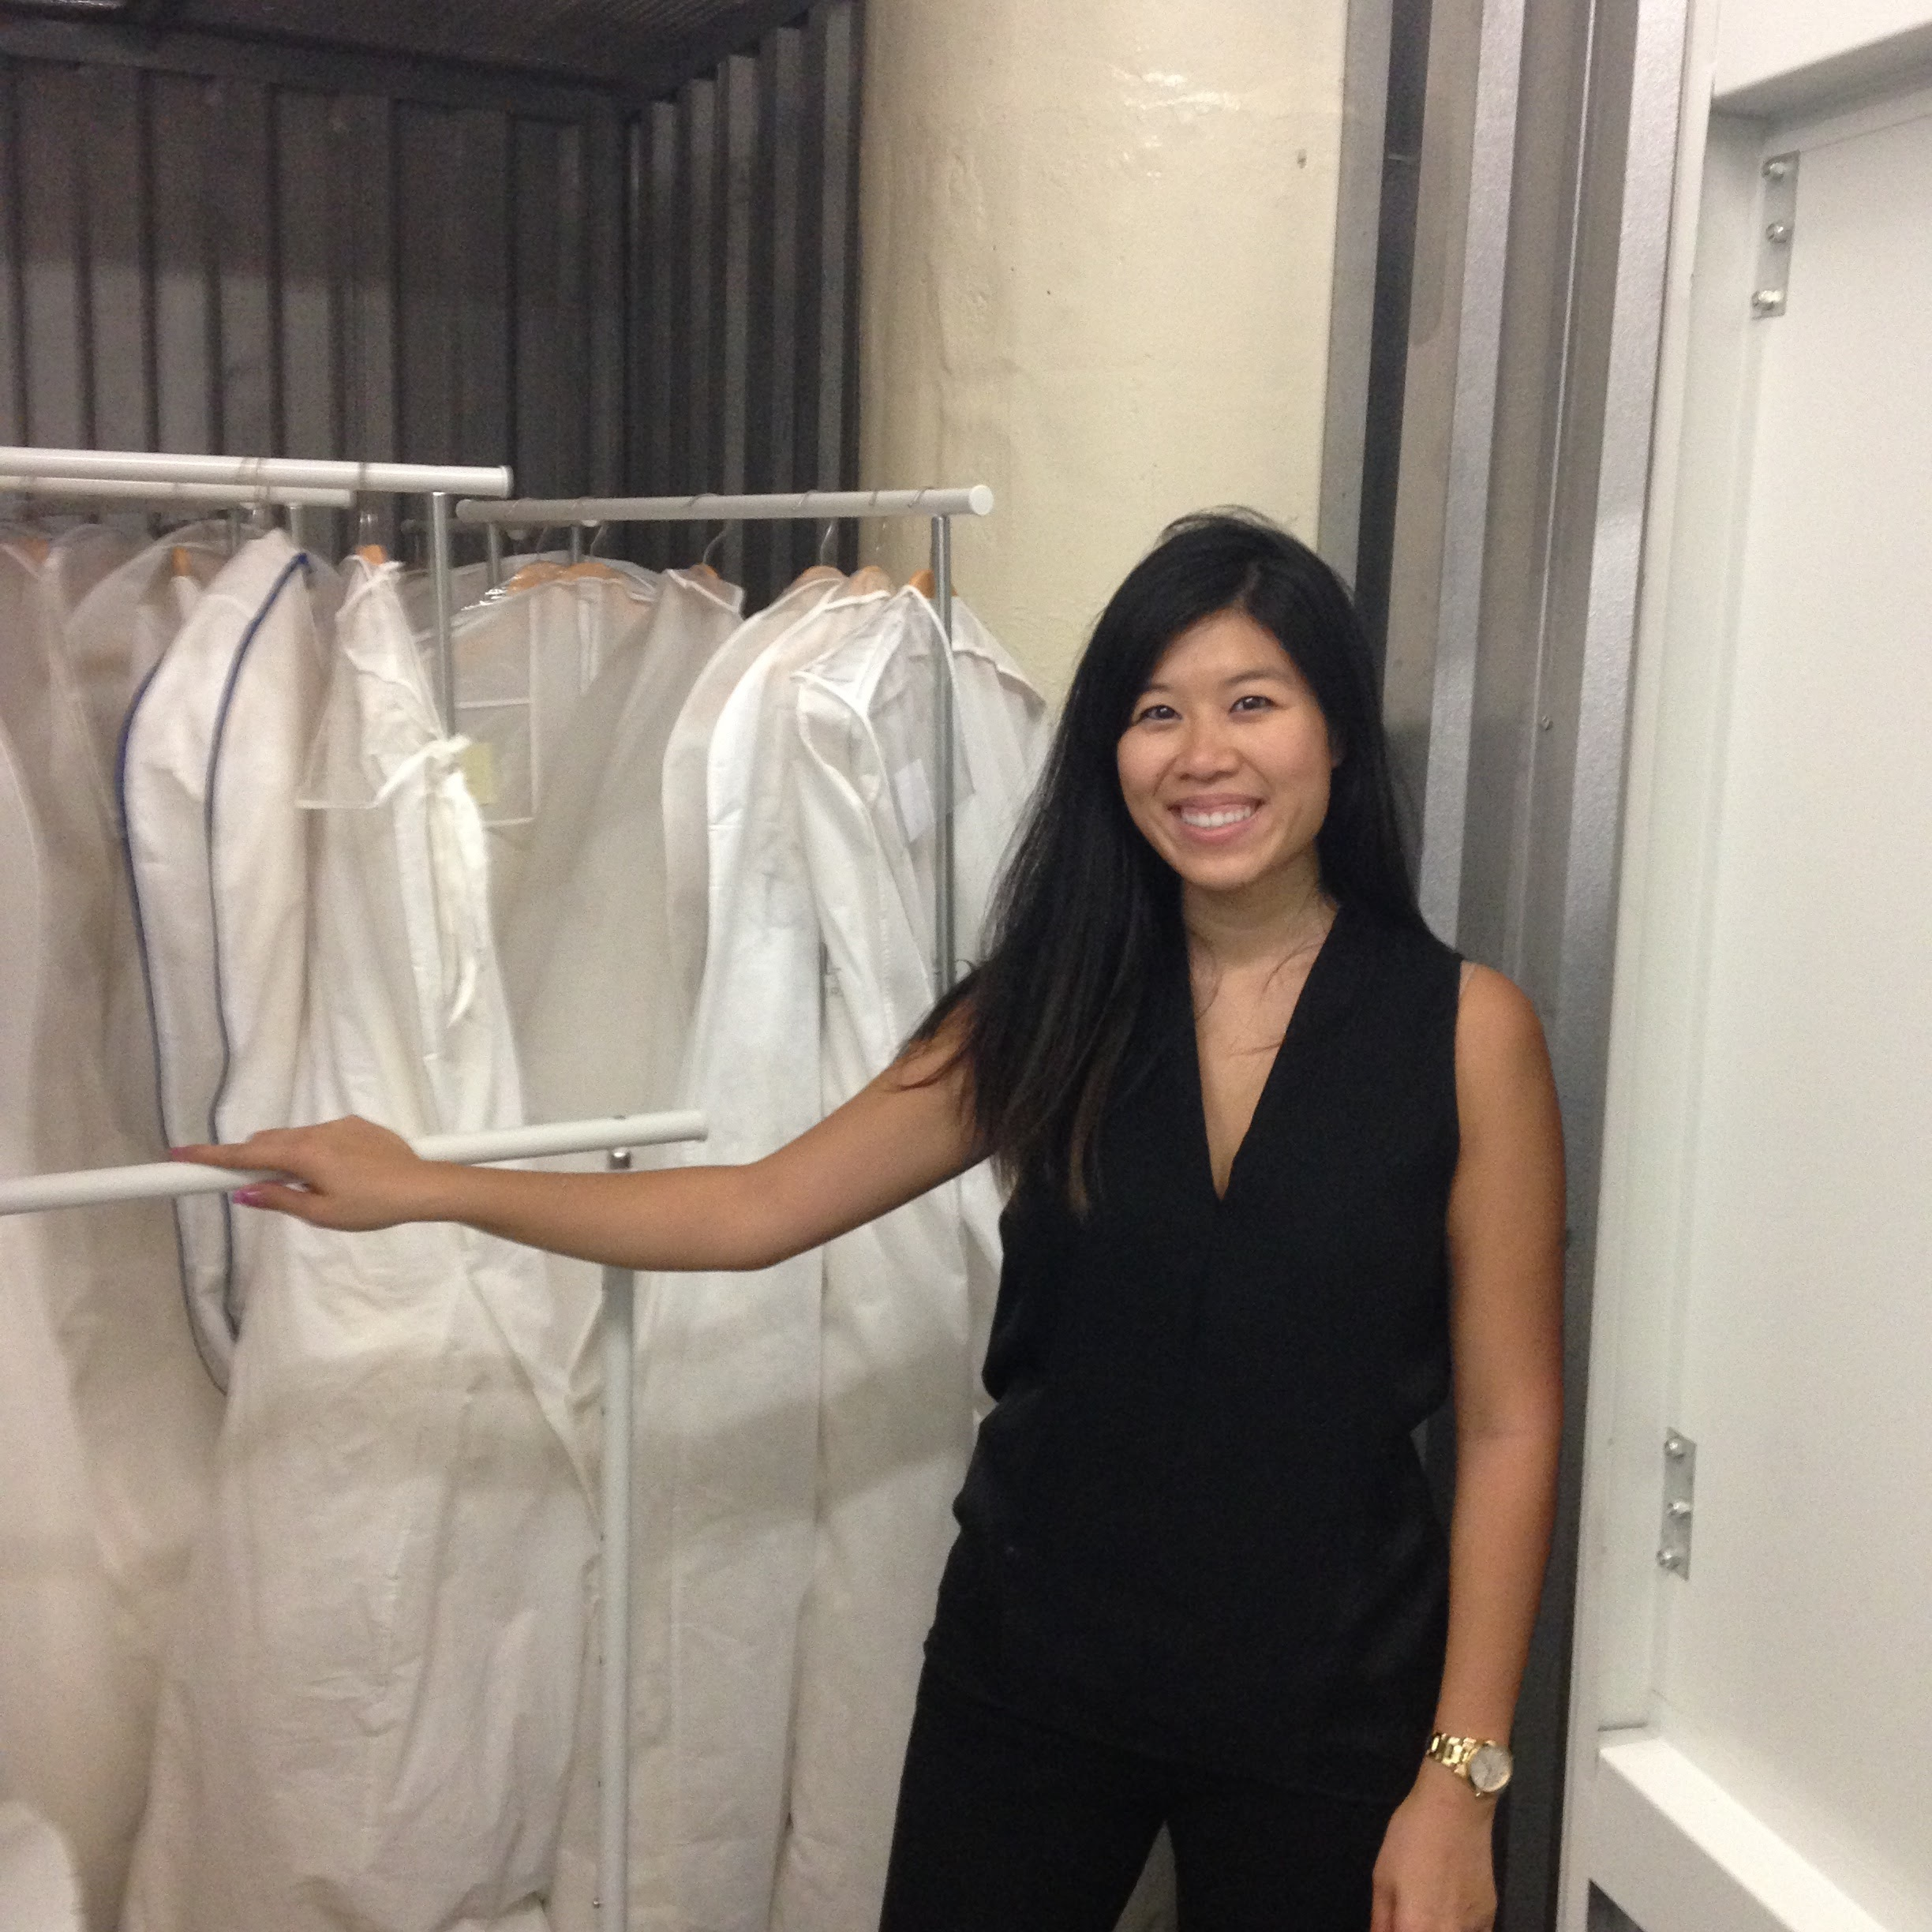 Jacquelyn moving dresses from pop up location to storage facilities.JPG